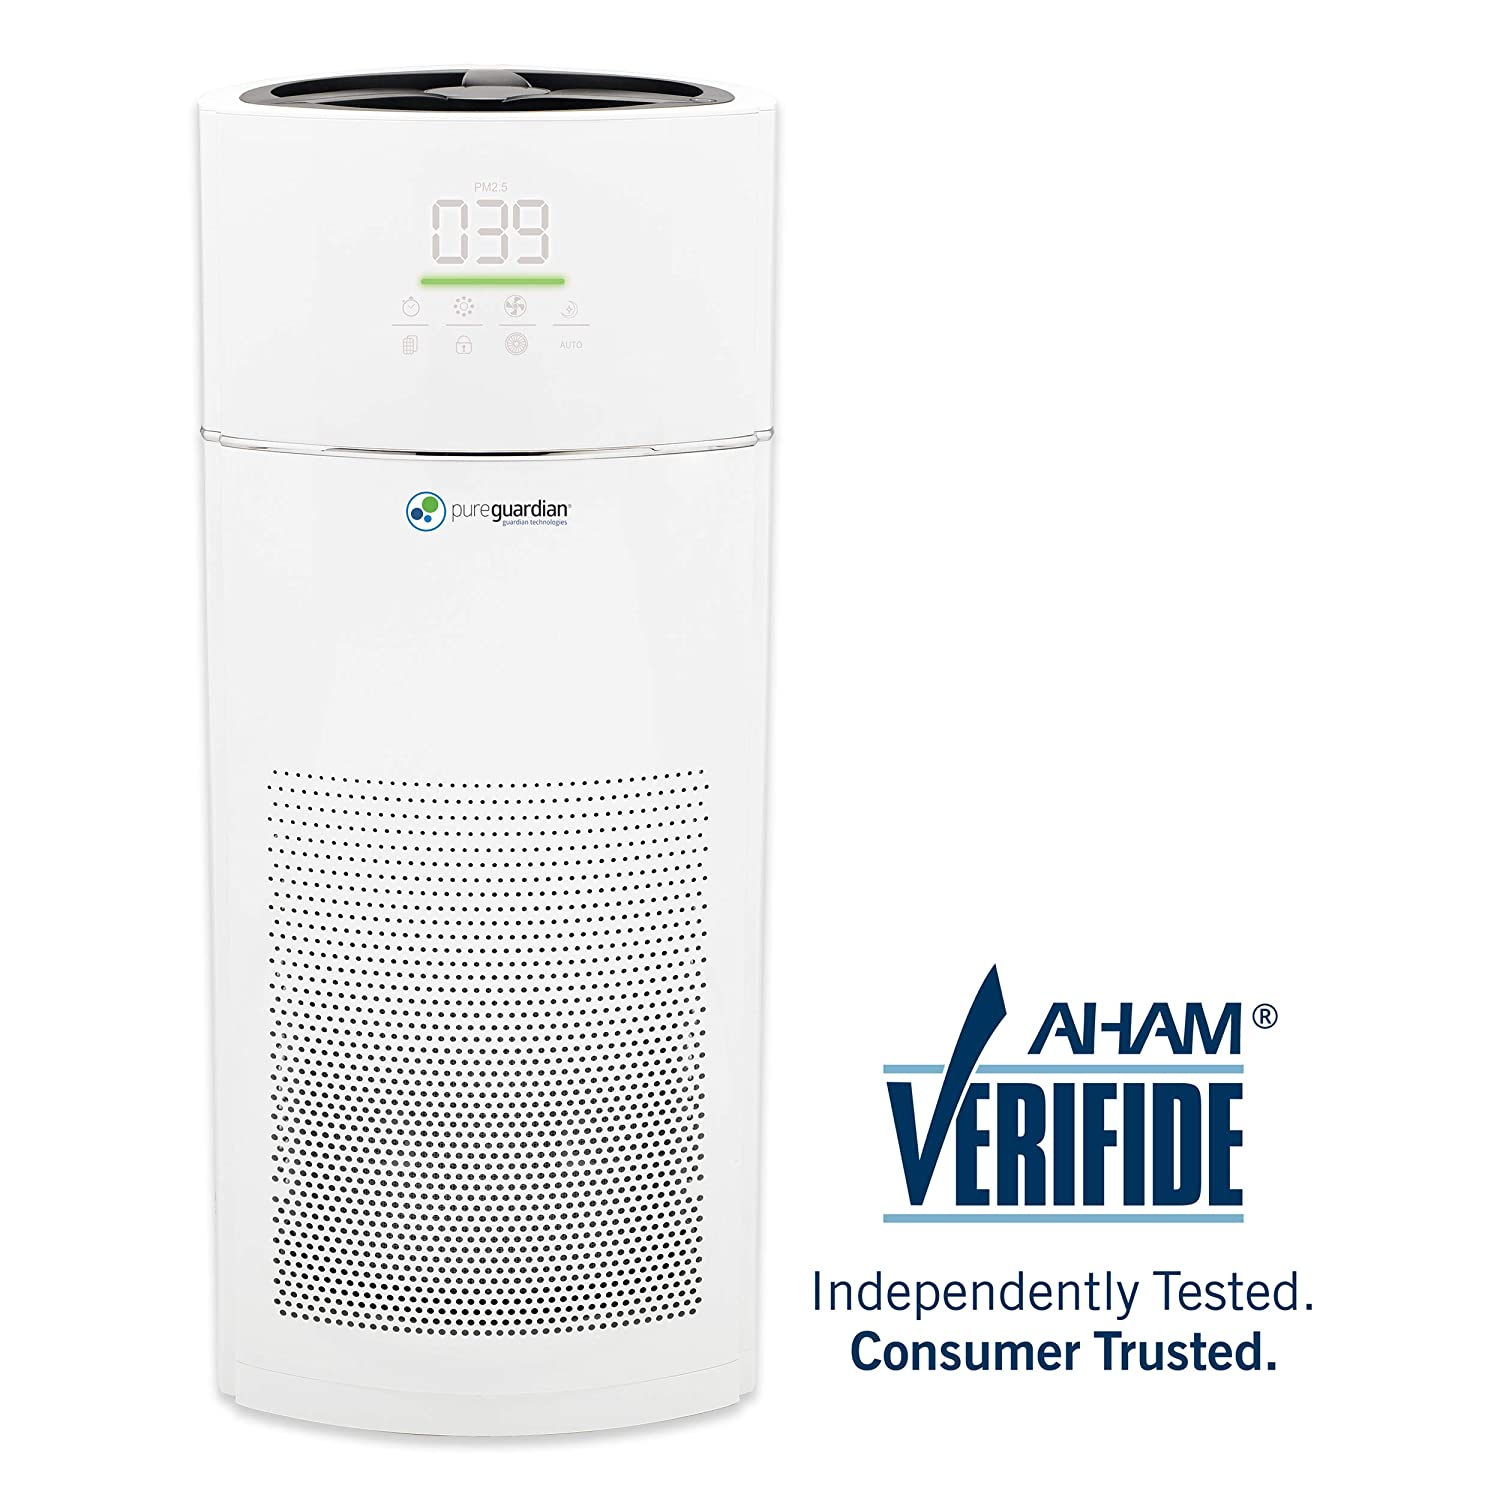 Germ Guardian High CADR True HEPA Filter Air Purifier for Home, Large Rooms up to 402 sq ft, Filters Allergies, Pollen, Smoke, Dust, Pet Dander, Mold, Odors, Deodorizer with Ionizer, Quiet AC9400W